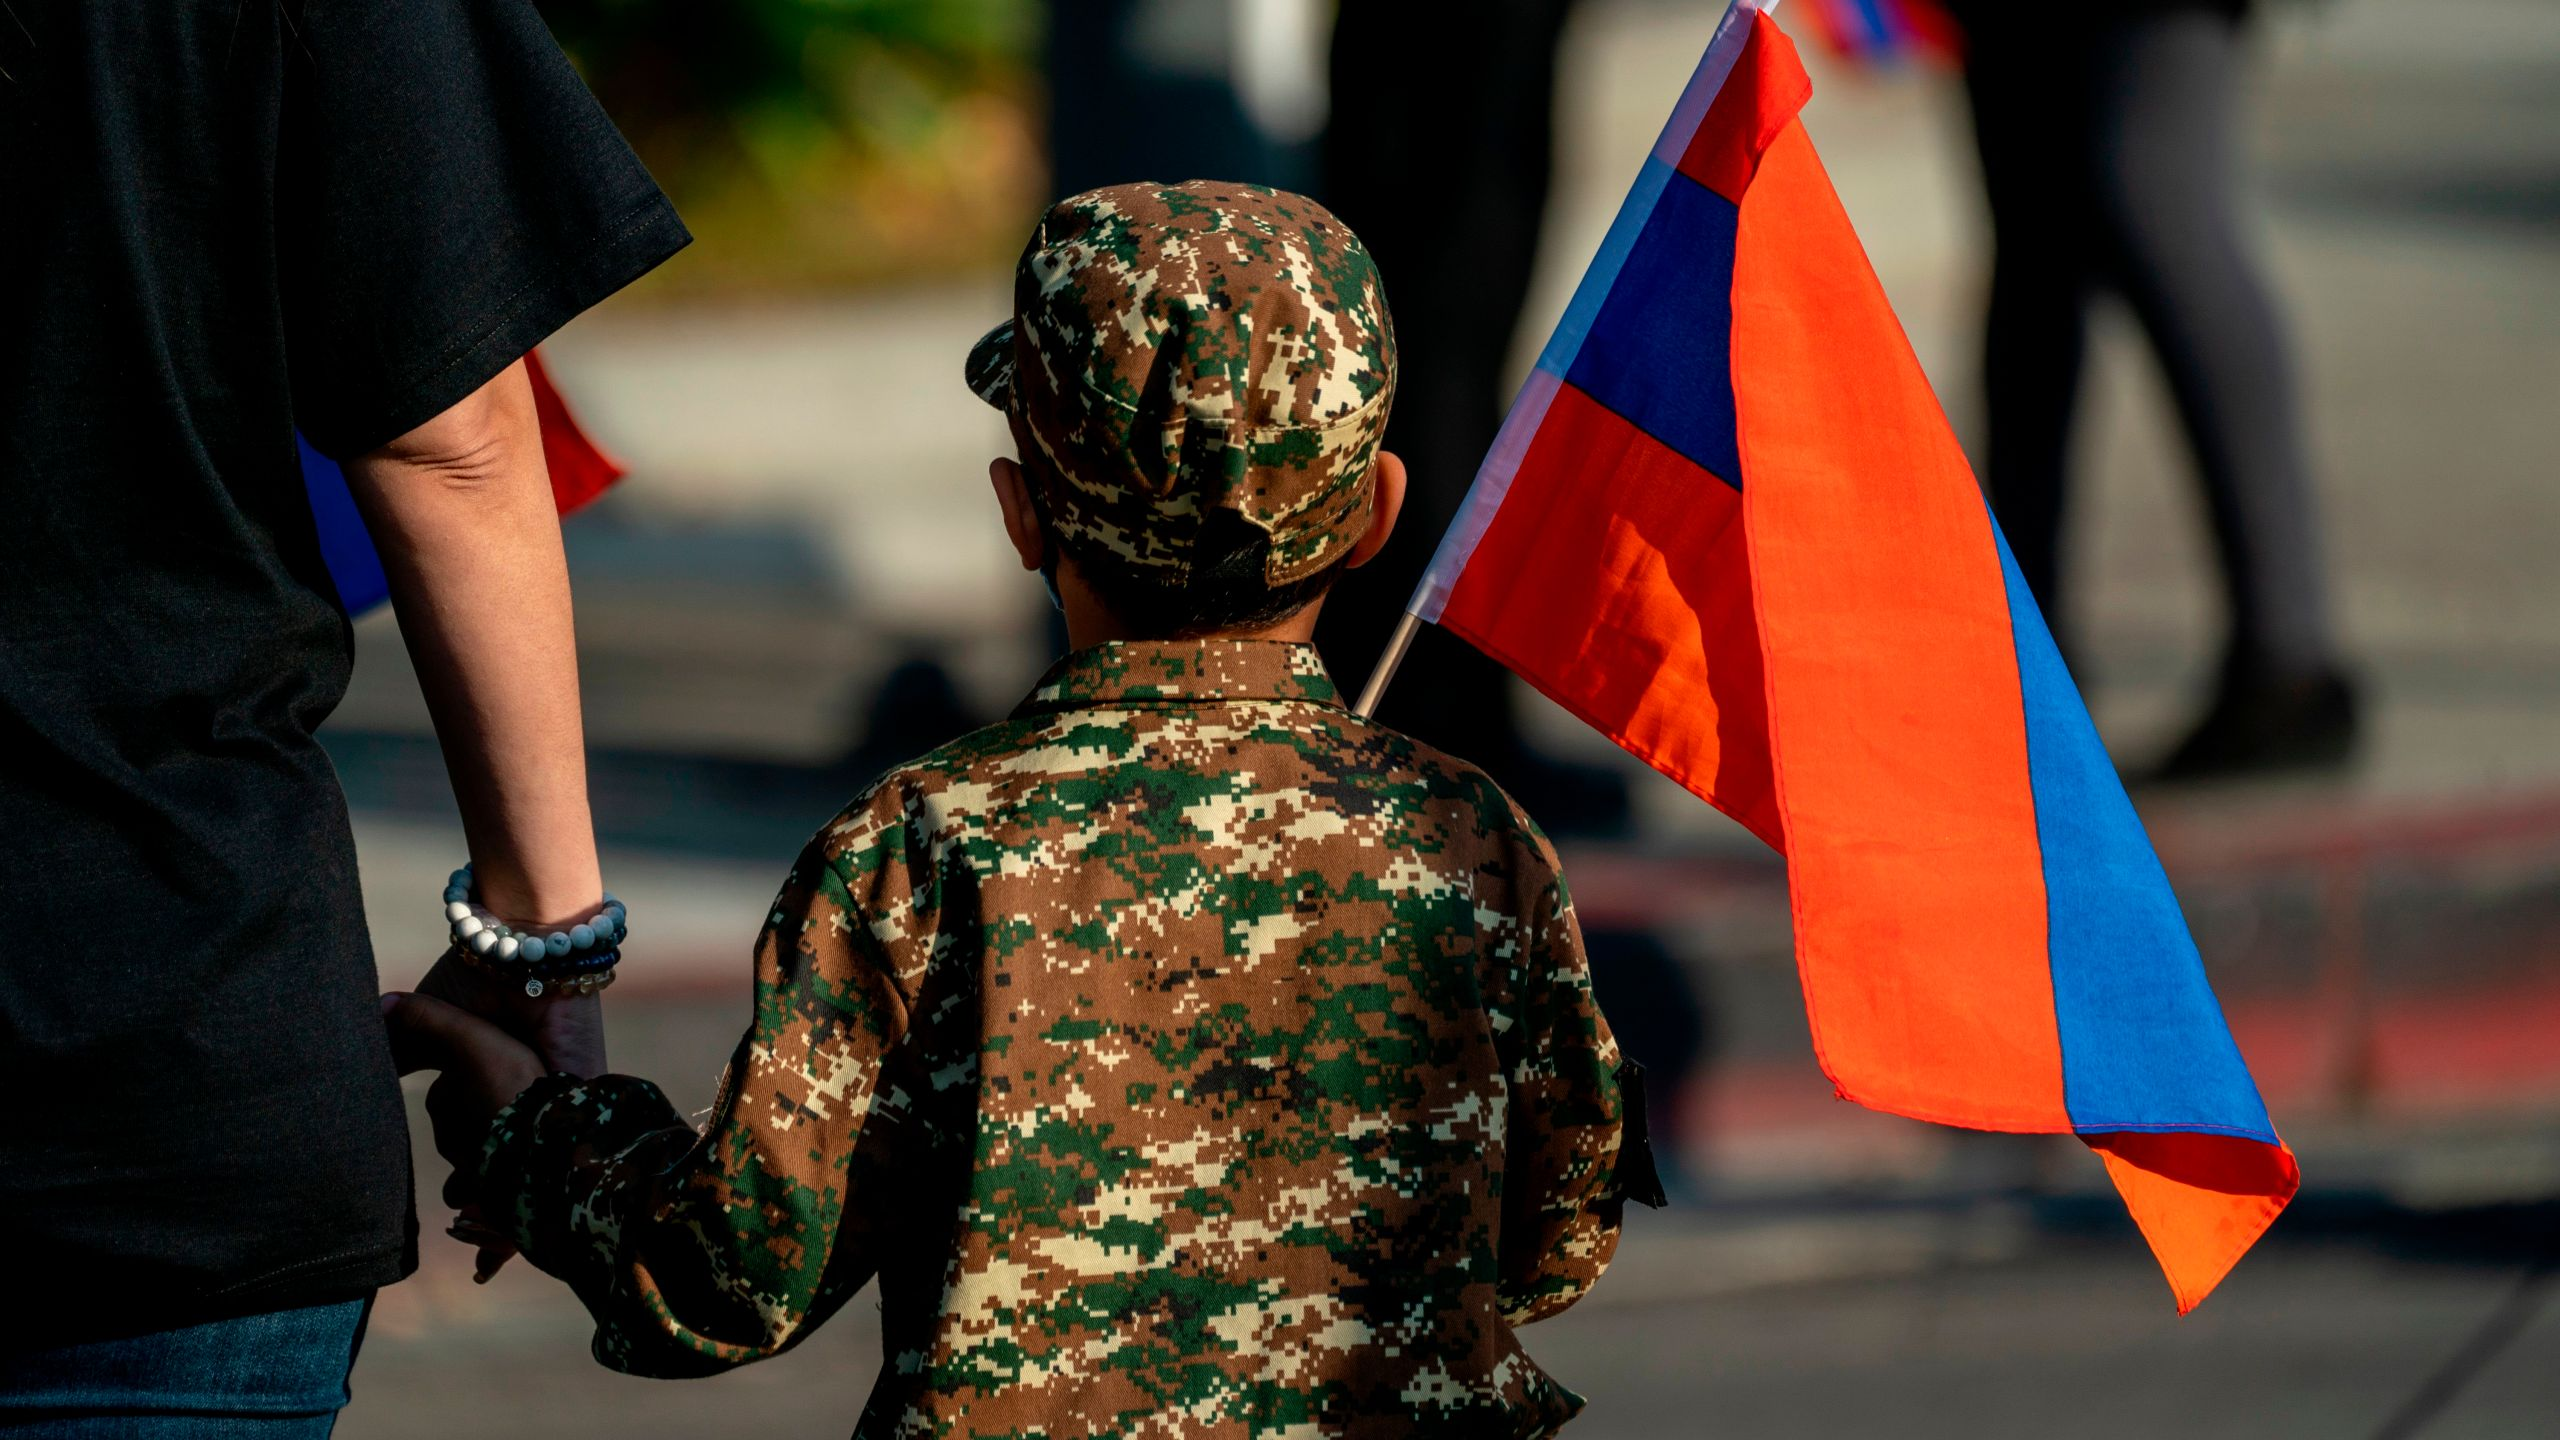 A boy holding an Armenian flag marches with others from Pan Pacific Park to the Consulate General of Turkey in Los Angeles, California, during a protest in support of Armenia and Karabakh amid the territorial dispute with Azerbaijan over Nagorno-Karabakh, on Oct. 11, 2020. (KYLE GRILLOT/AFP via Getty Images)